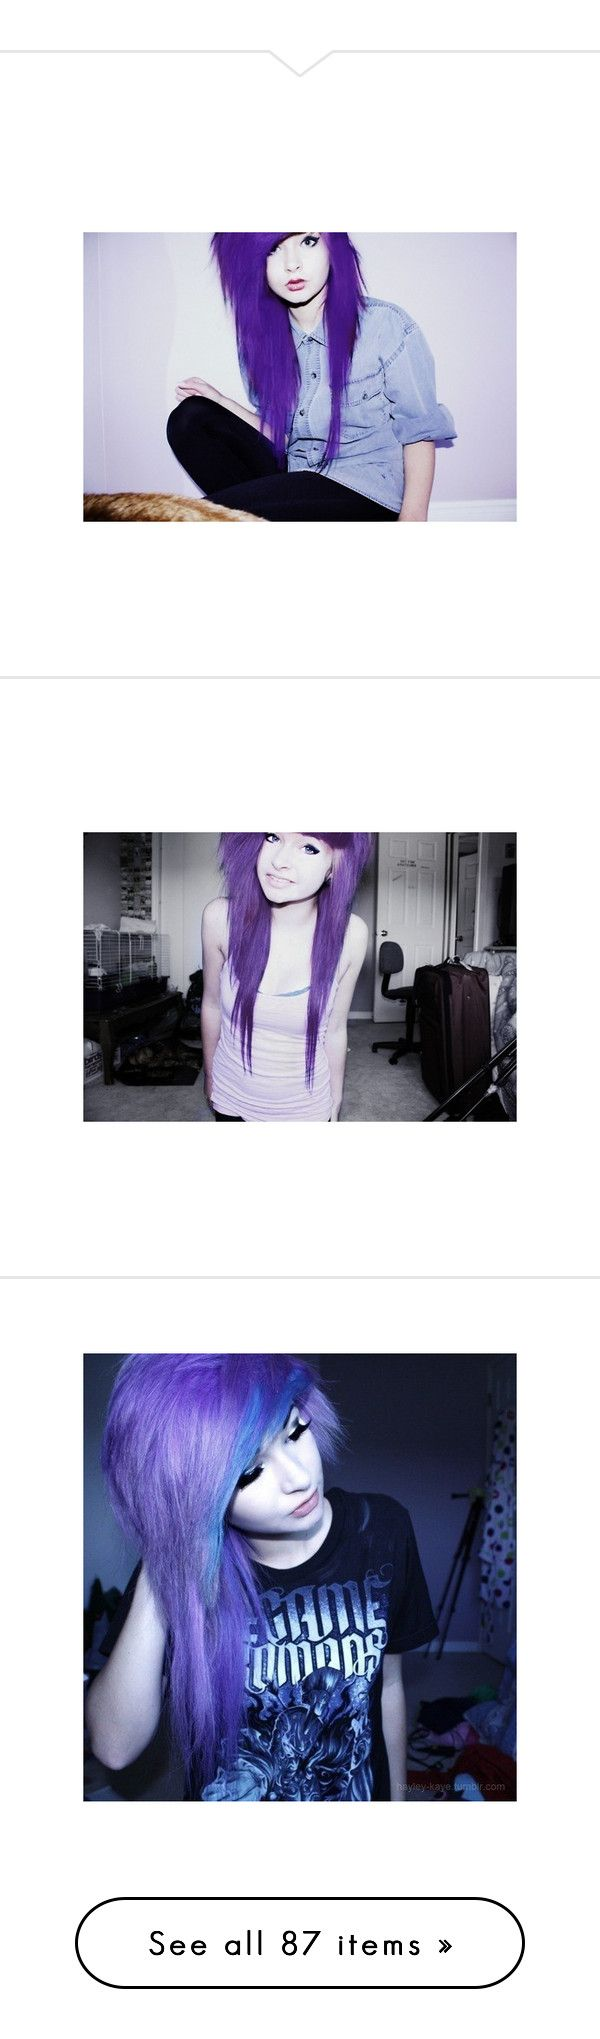 """""""Where are you and I'm so sorry I cannot sleep I cannot dream tonight I need somebody and always This sick strange darkness Comes creeping on so haunting every time [MAY BE TRIGGERING TO SELF HARMERS]"""" by i-sleepwithsirens ❤ liked on Polyvore featuring hair, people, girls, purple hair, pictures, quotes, words, text, fillers and sayings"""